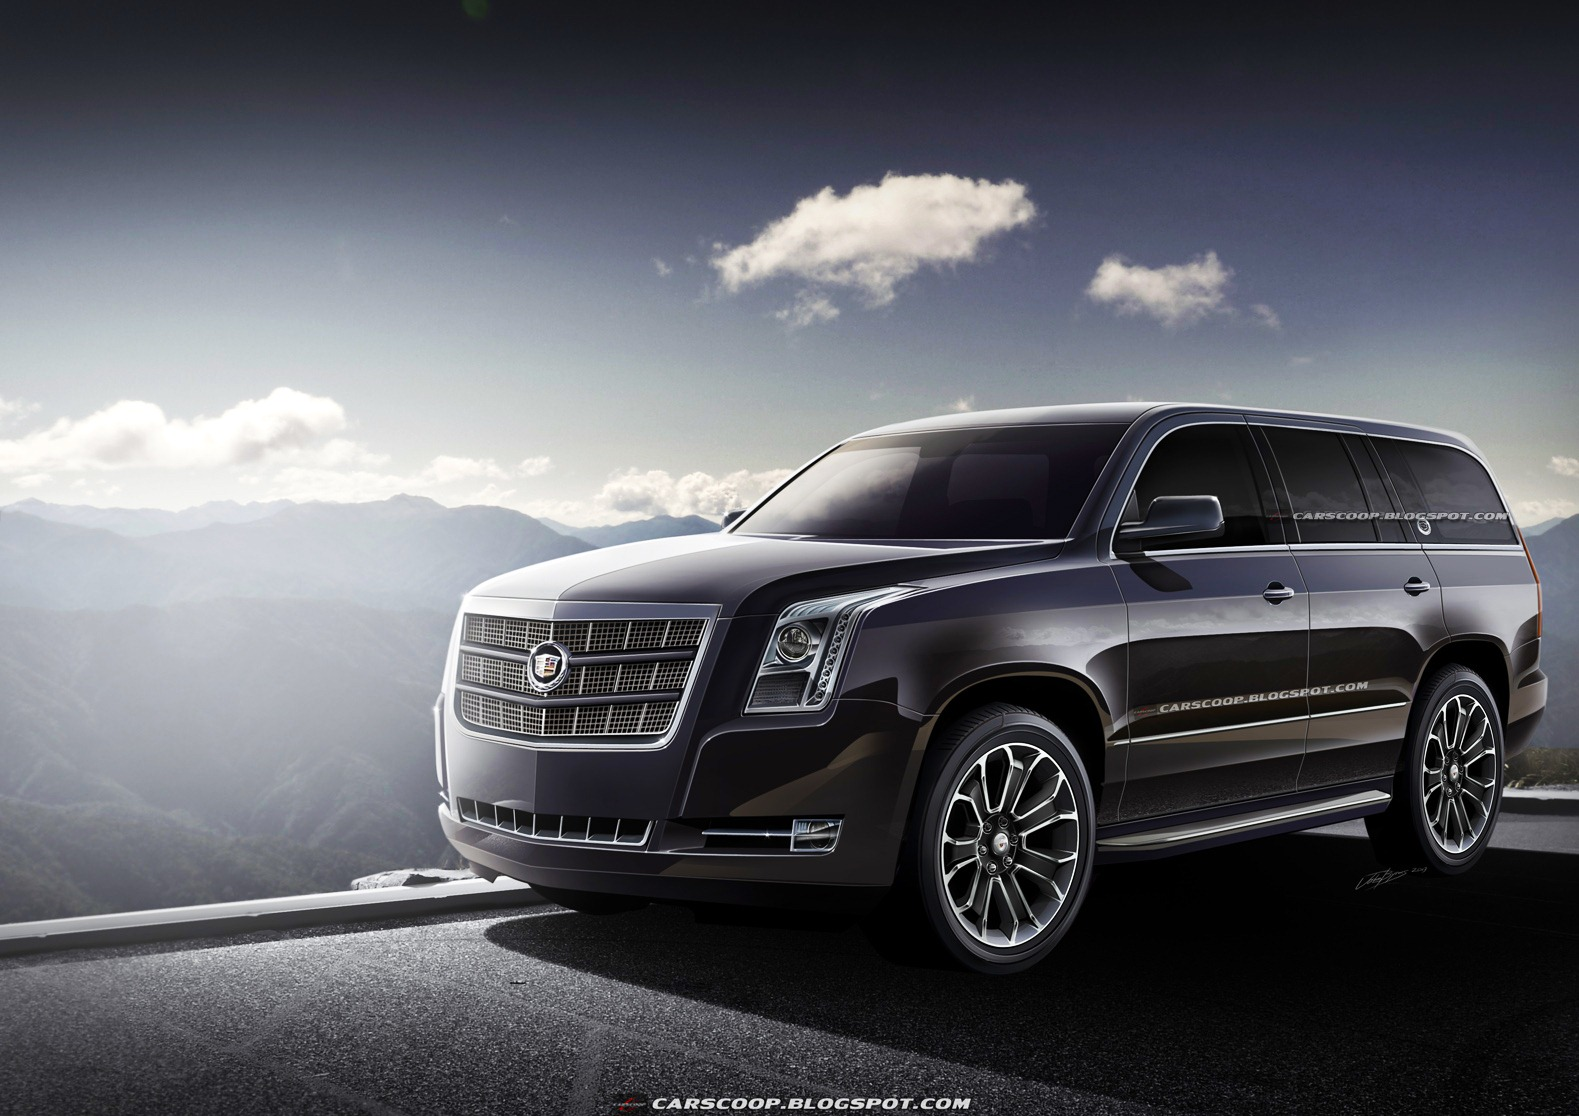 2013 Cadillac Escalade Luxury SUV (2014) - future model